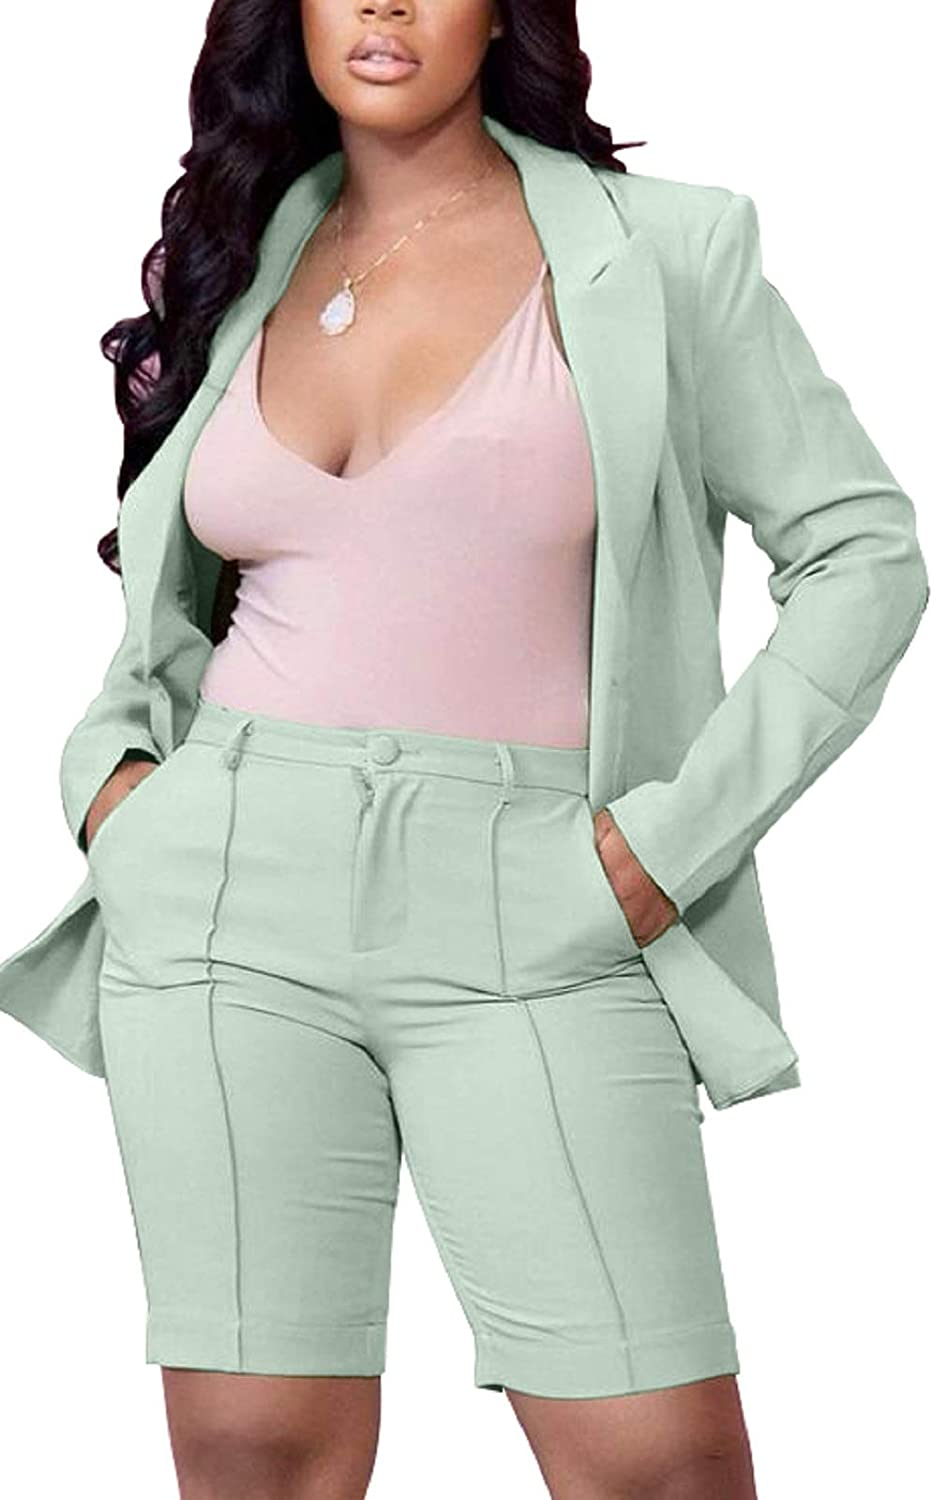 Women 2 Piece Shorts Outfits Plaid Short Sleeve Blazer Jacket and Shorts Casual Business Suits Set